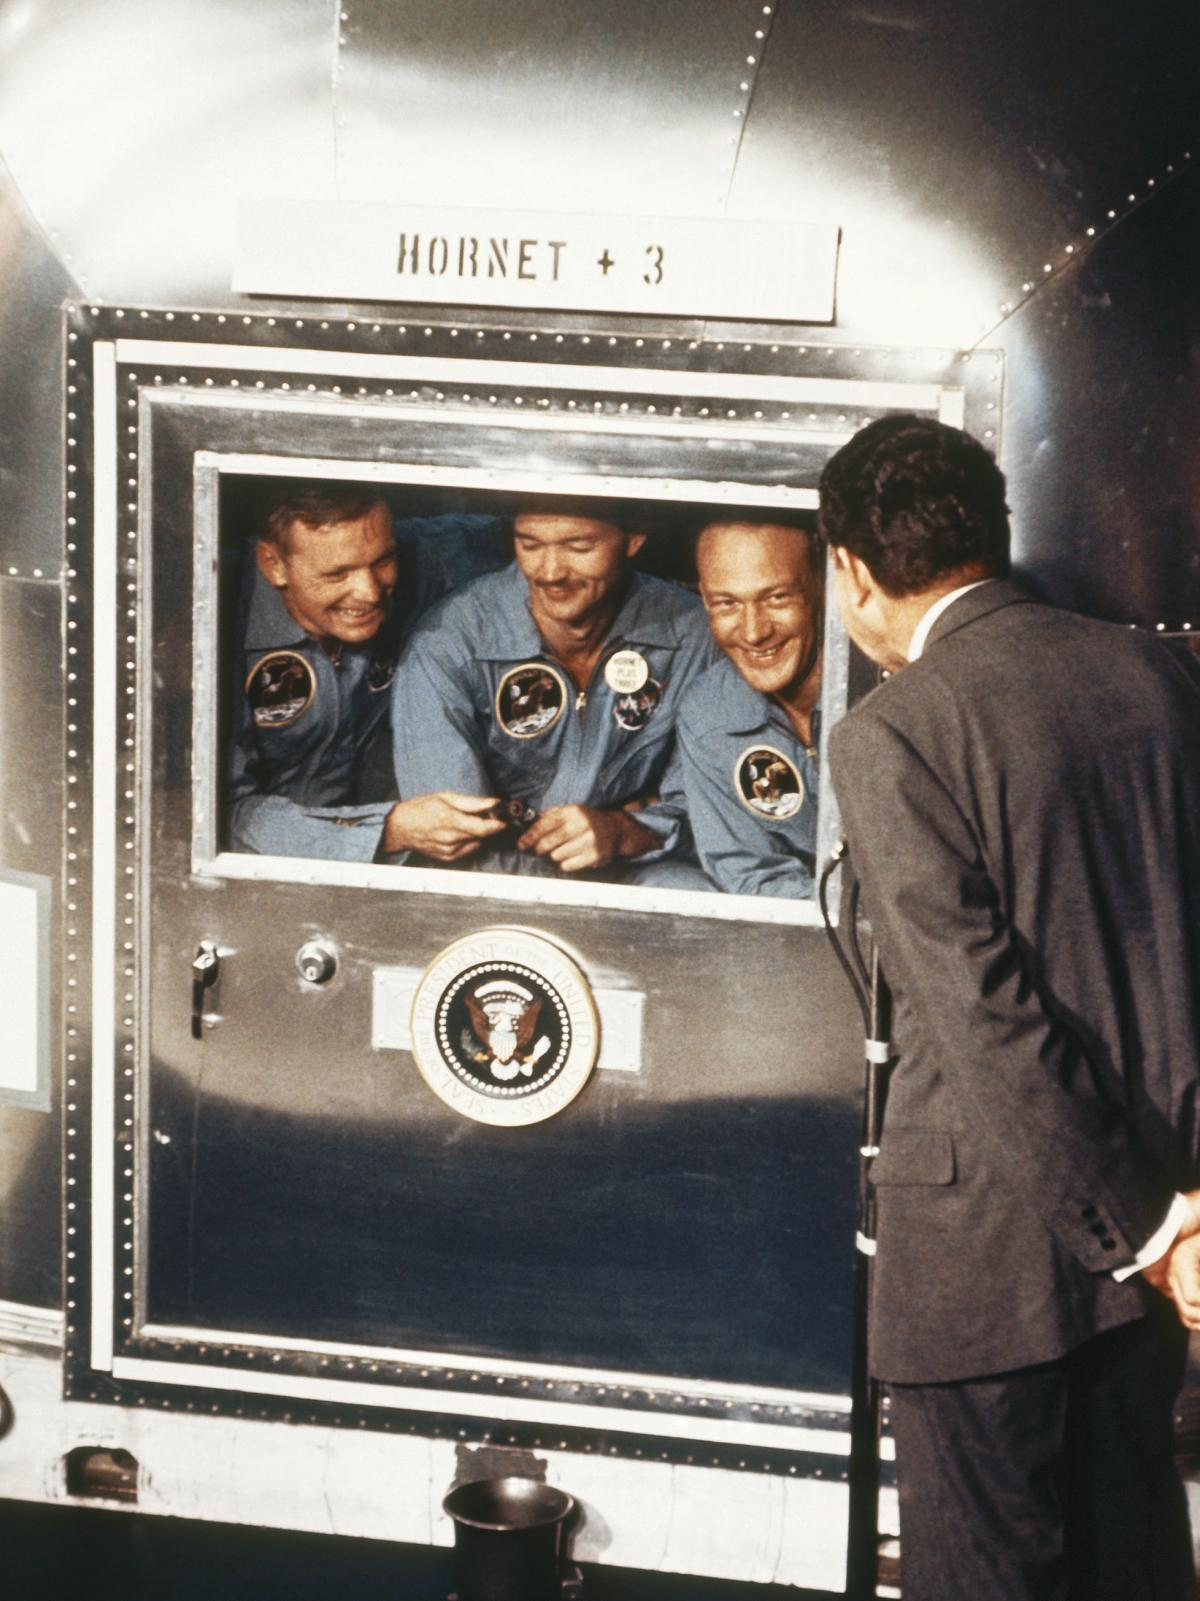 In 1969, President Richard Nixon greets the Apollo 11 astronauts in quarantine after their mission to the moon. The Apollo 11 crew members (from left) are Neil Armstrong, Collins and Buzz Aldrin.